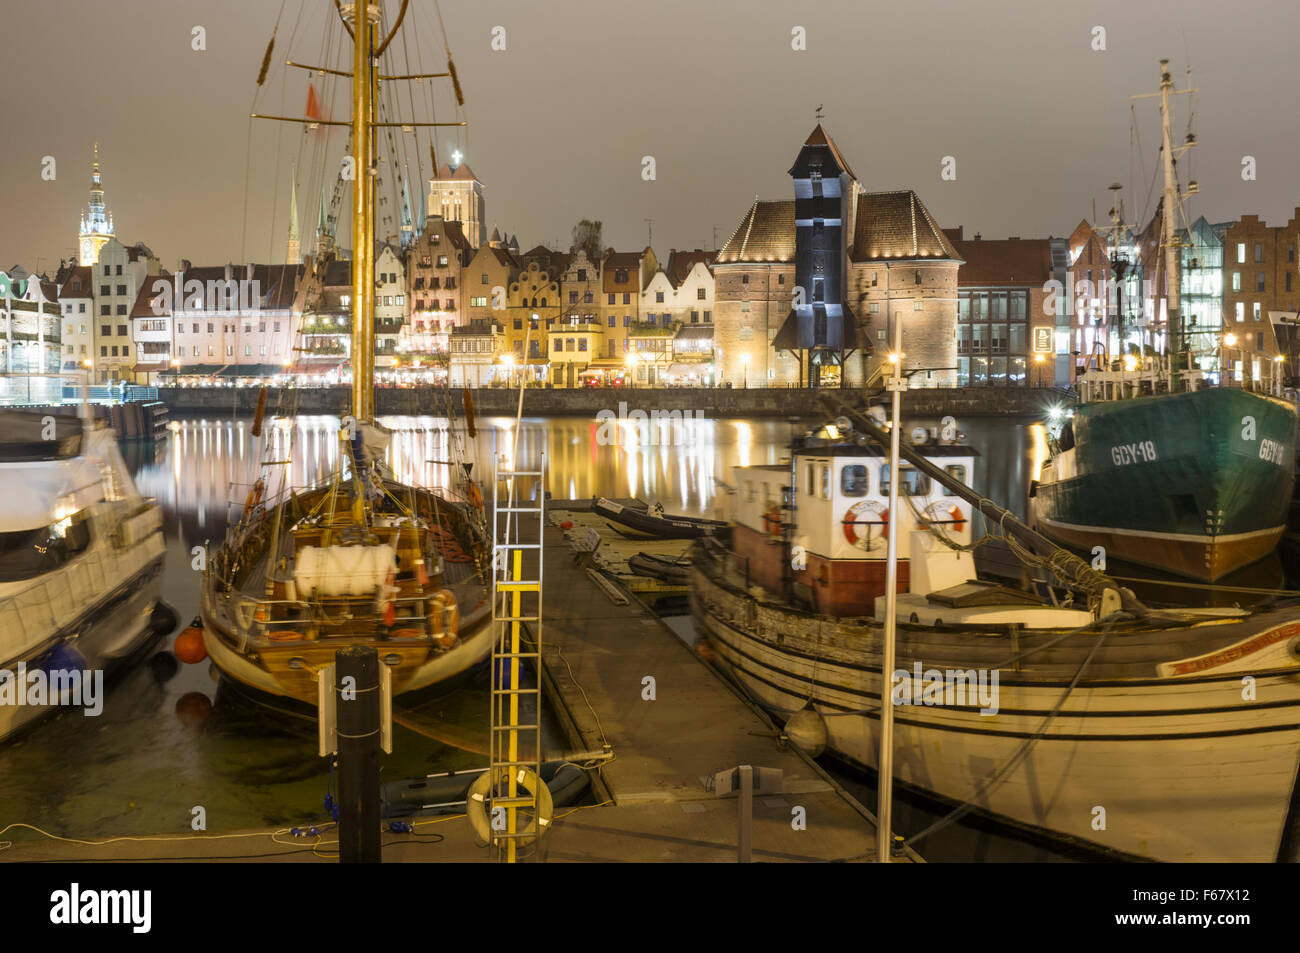 Anchored boats, medieval crane and waterfront tenements reflected on Motlawa river by night. Gdansk, Poland - Stock Image